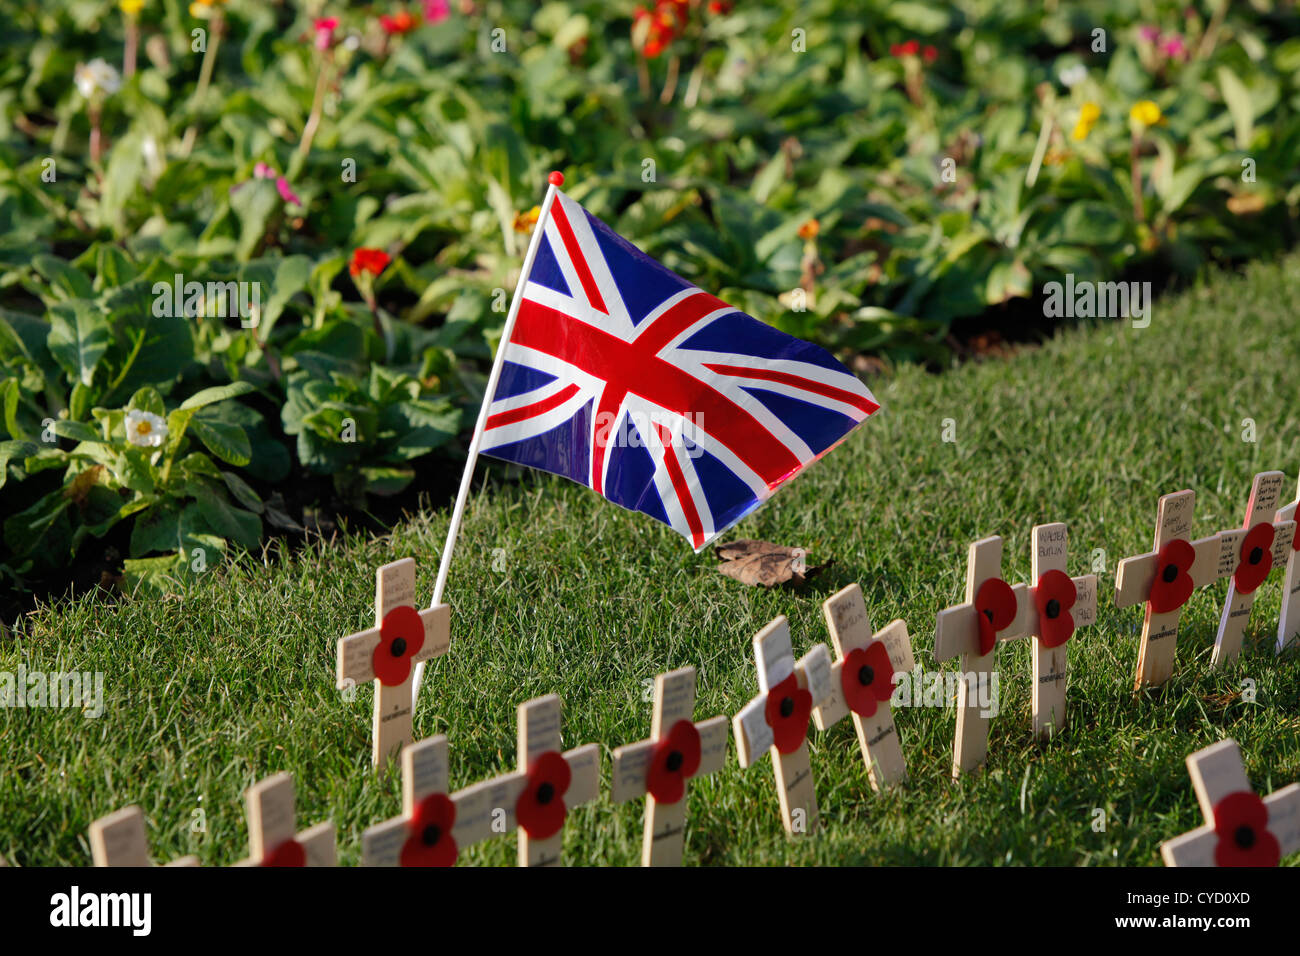 a row of crosses and poppies in the grass with a union jack flag